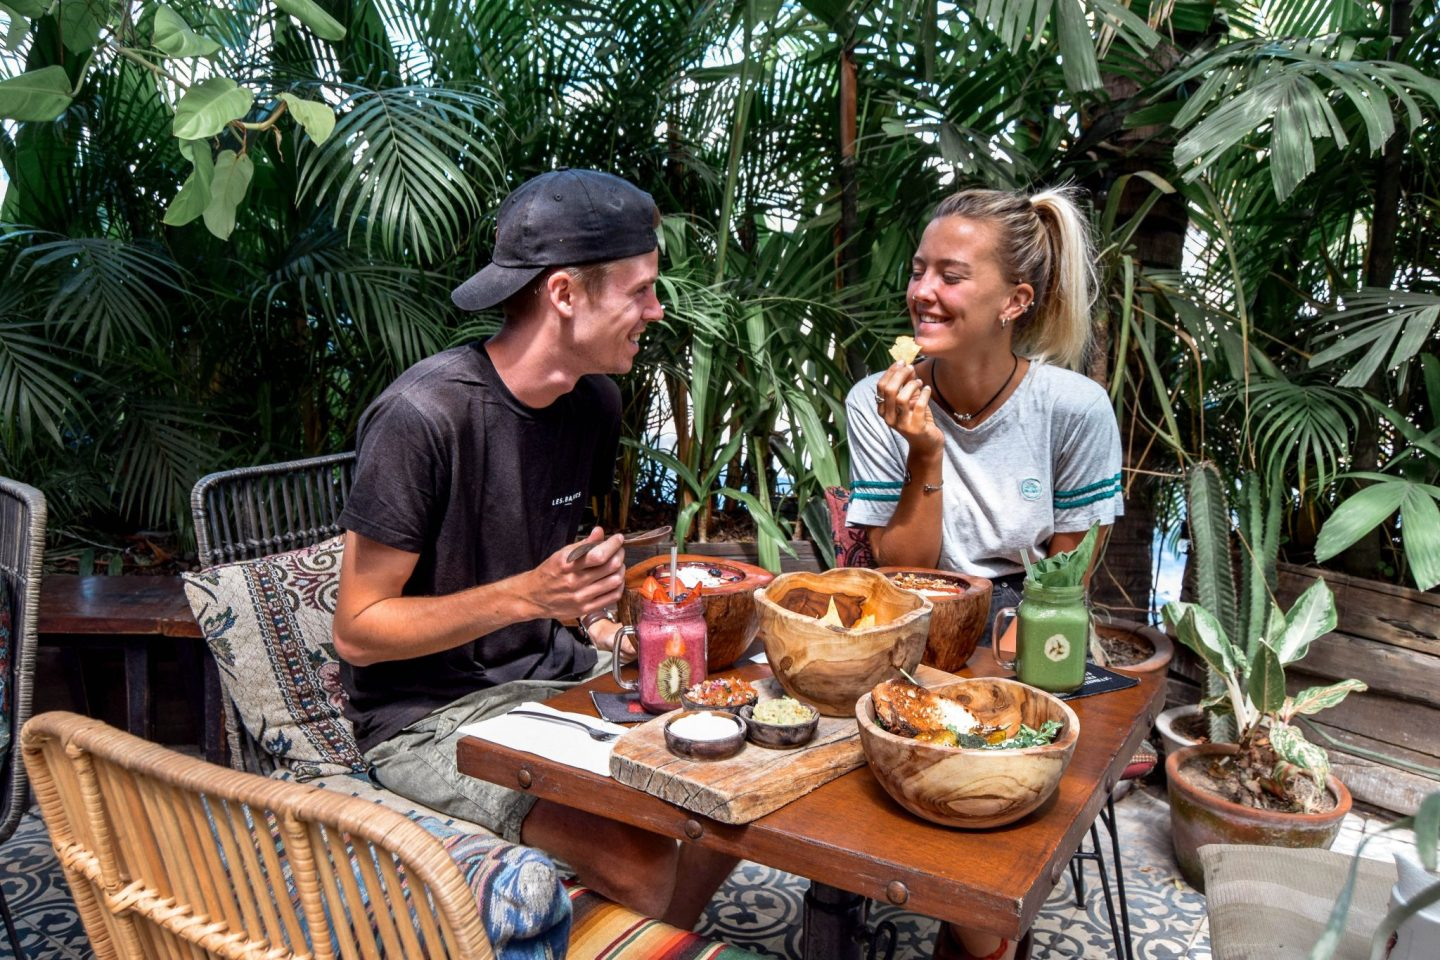 Wanderers & Warriors - Charlie & Lauren UK Travel Couple - Strawberry Fields Seminyak Bali - Best Restaurants In Bali Food - Best Restaurants In Seminyak Bali - Best Restaurants In Bali Food - Best Restaurants In Seminyak